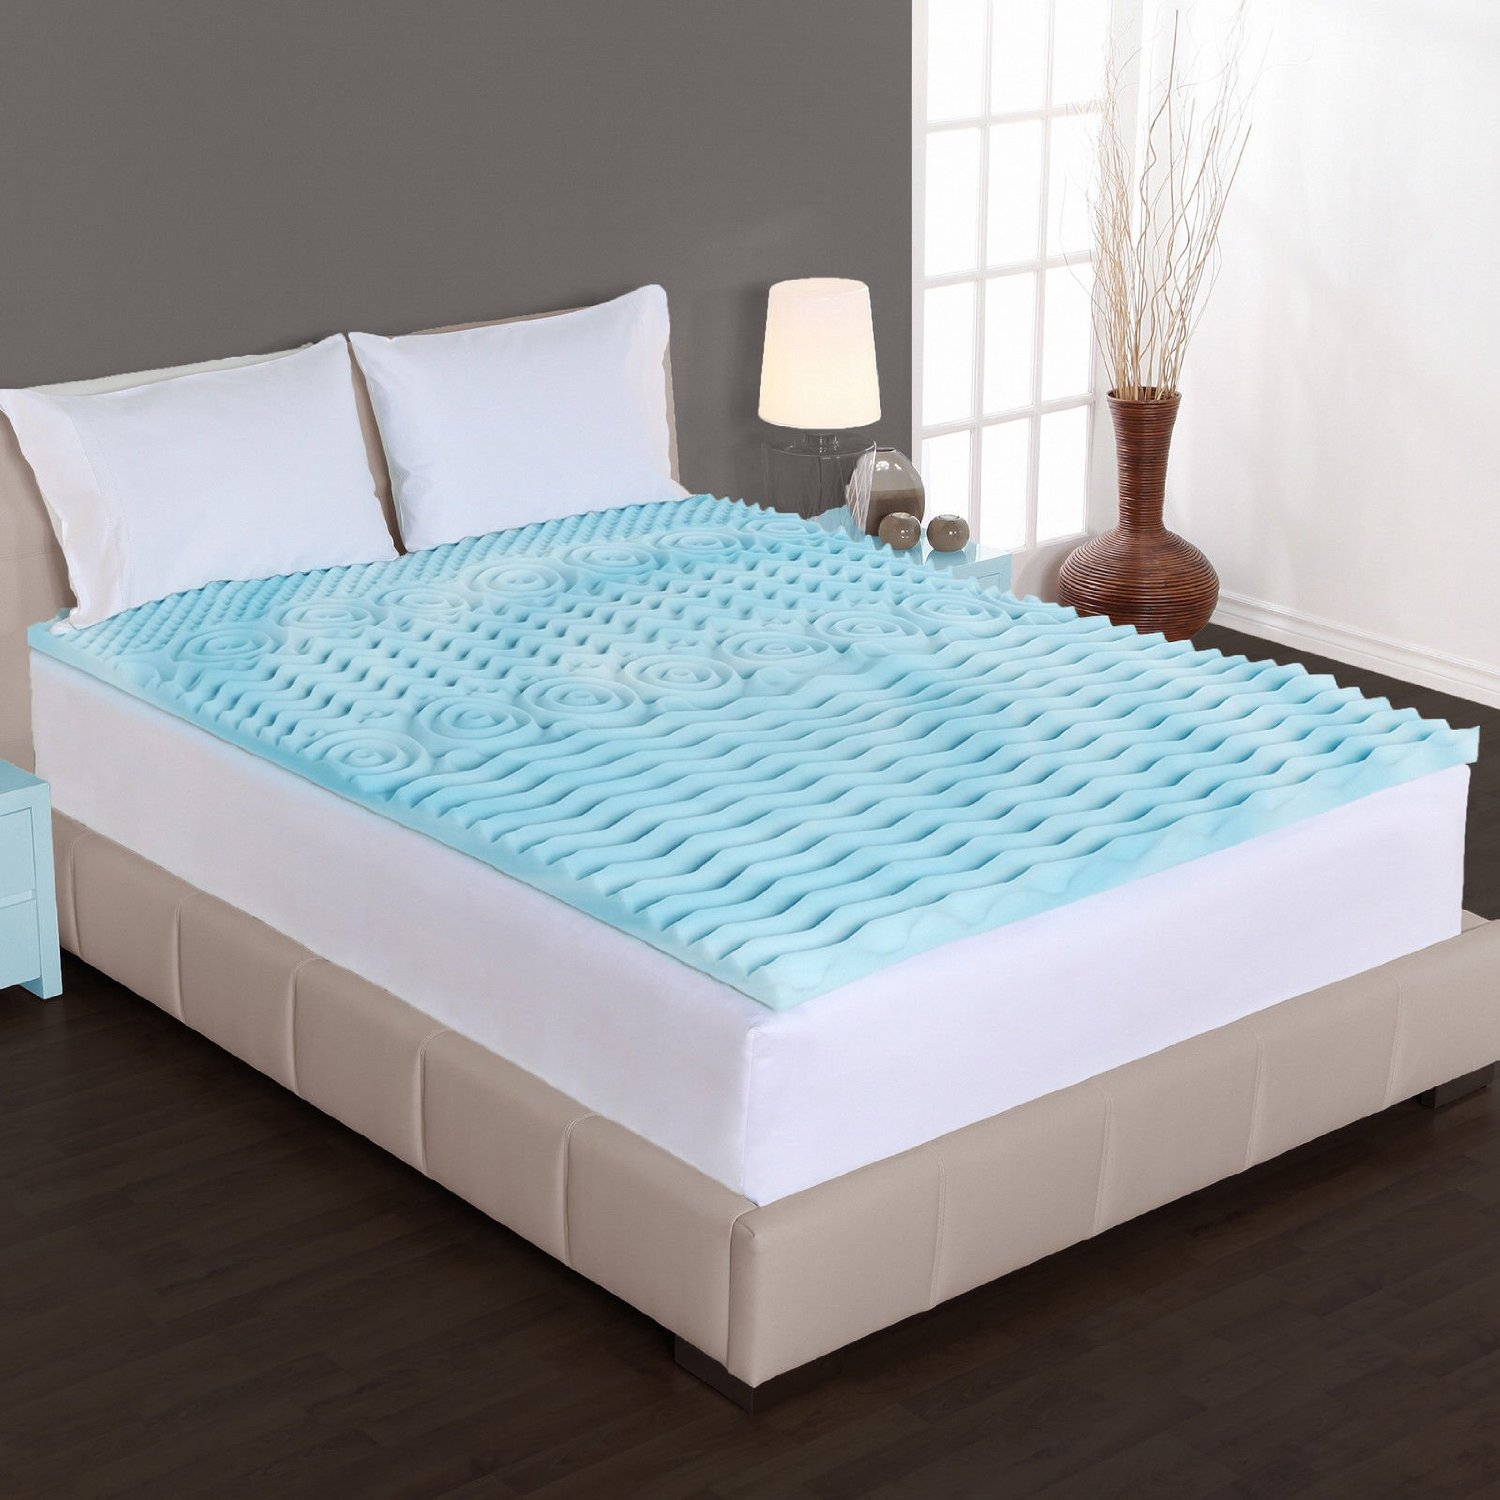 Walmart Feather Bed Mattress Topper